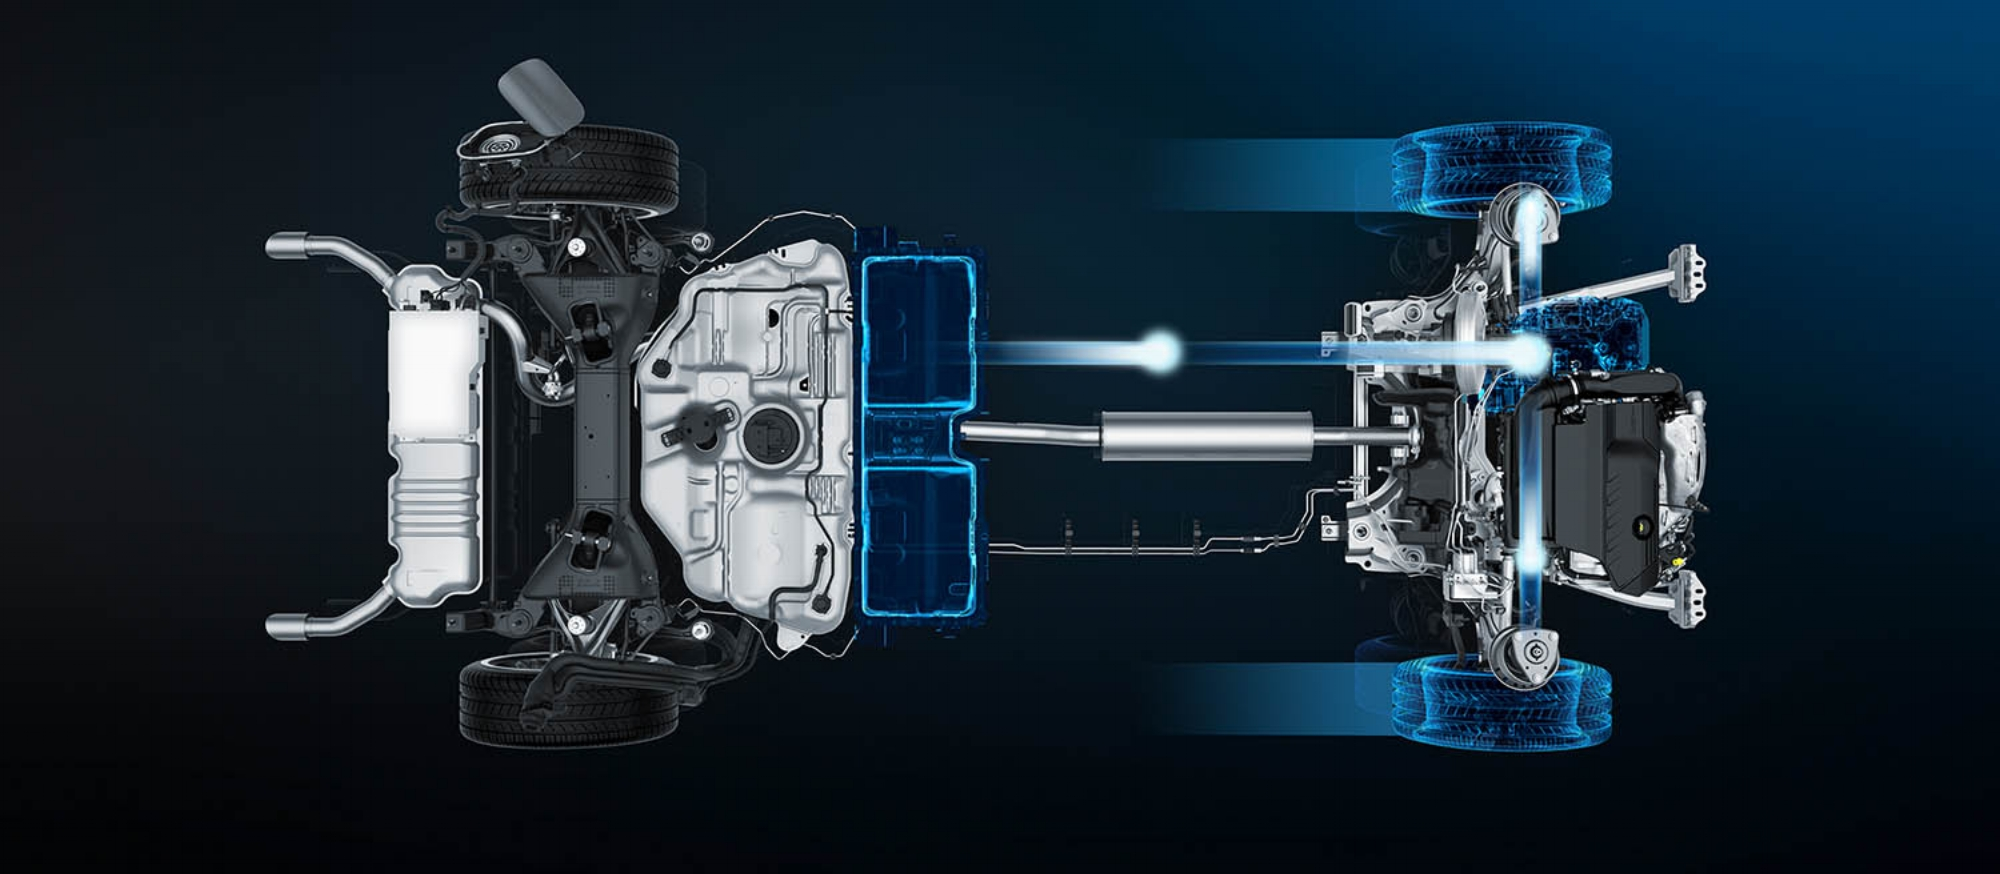 Central batteries feed front electric motor, for zero emission-running